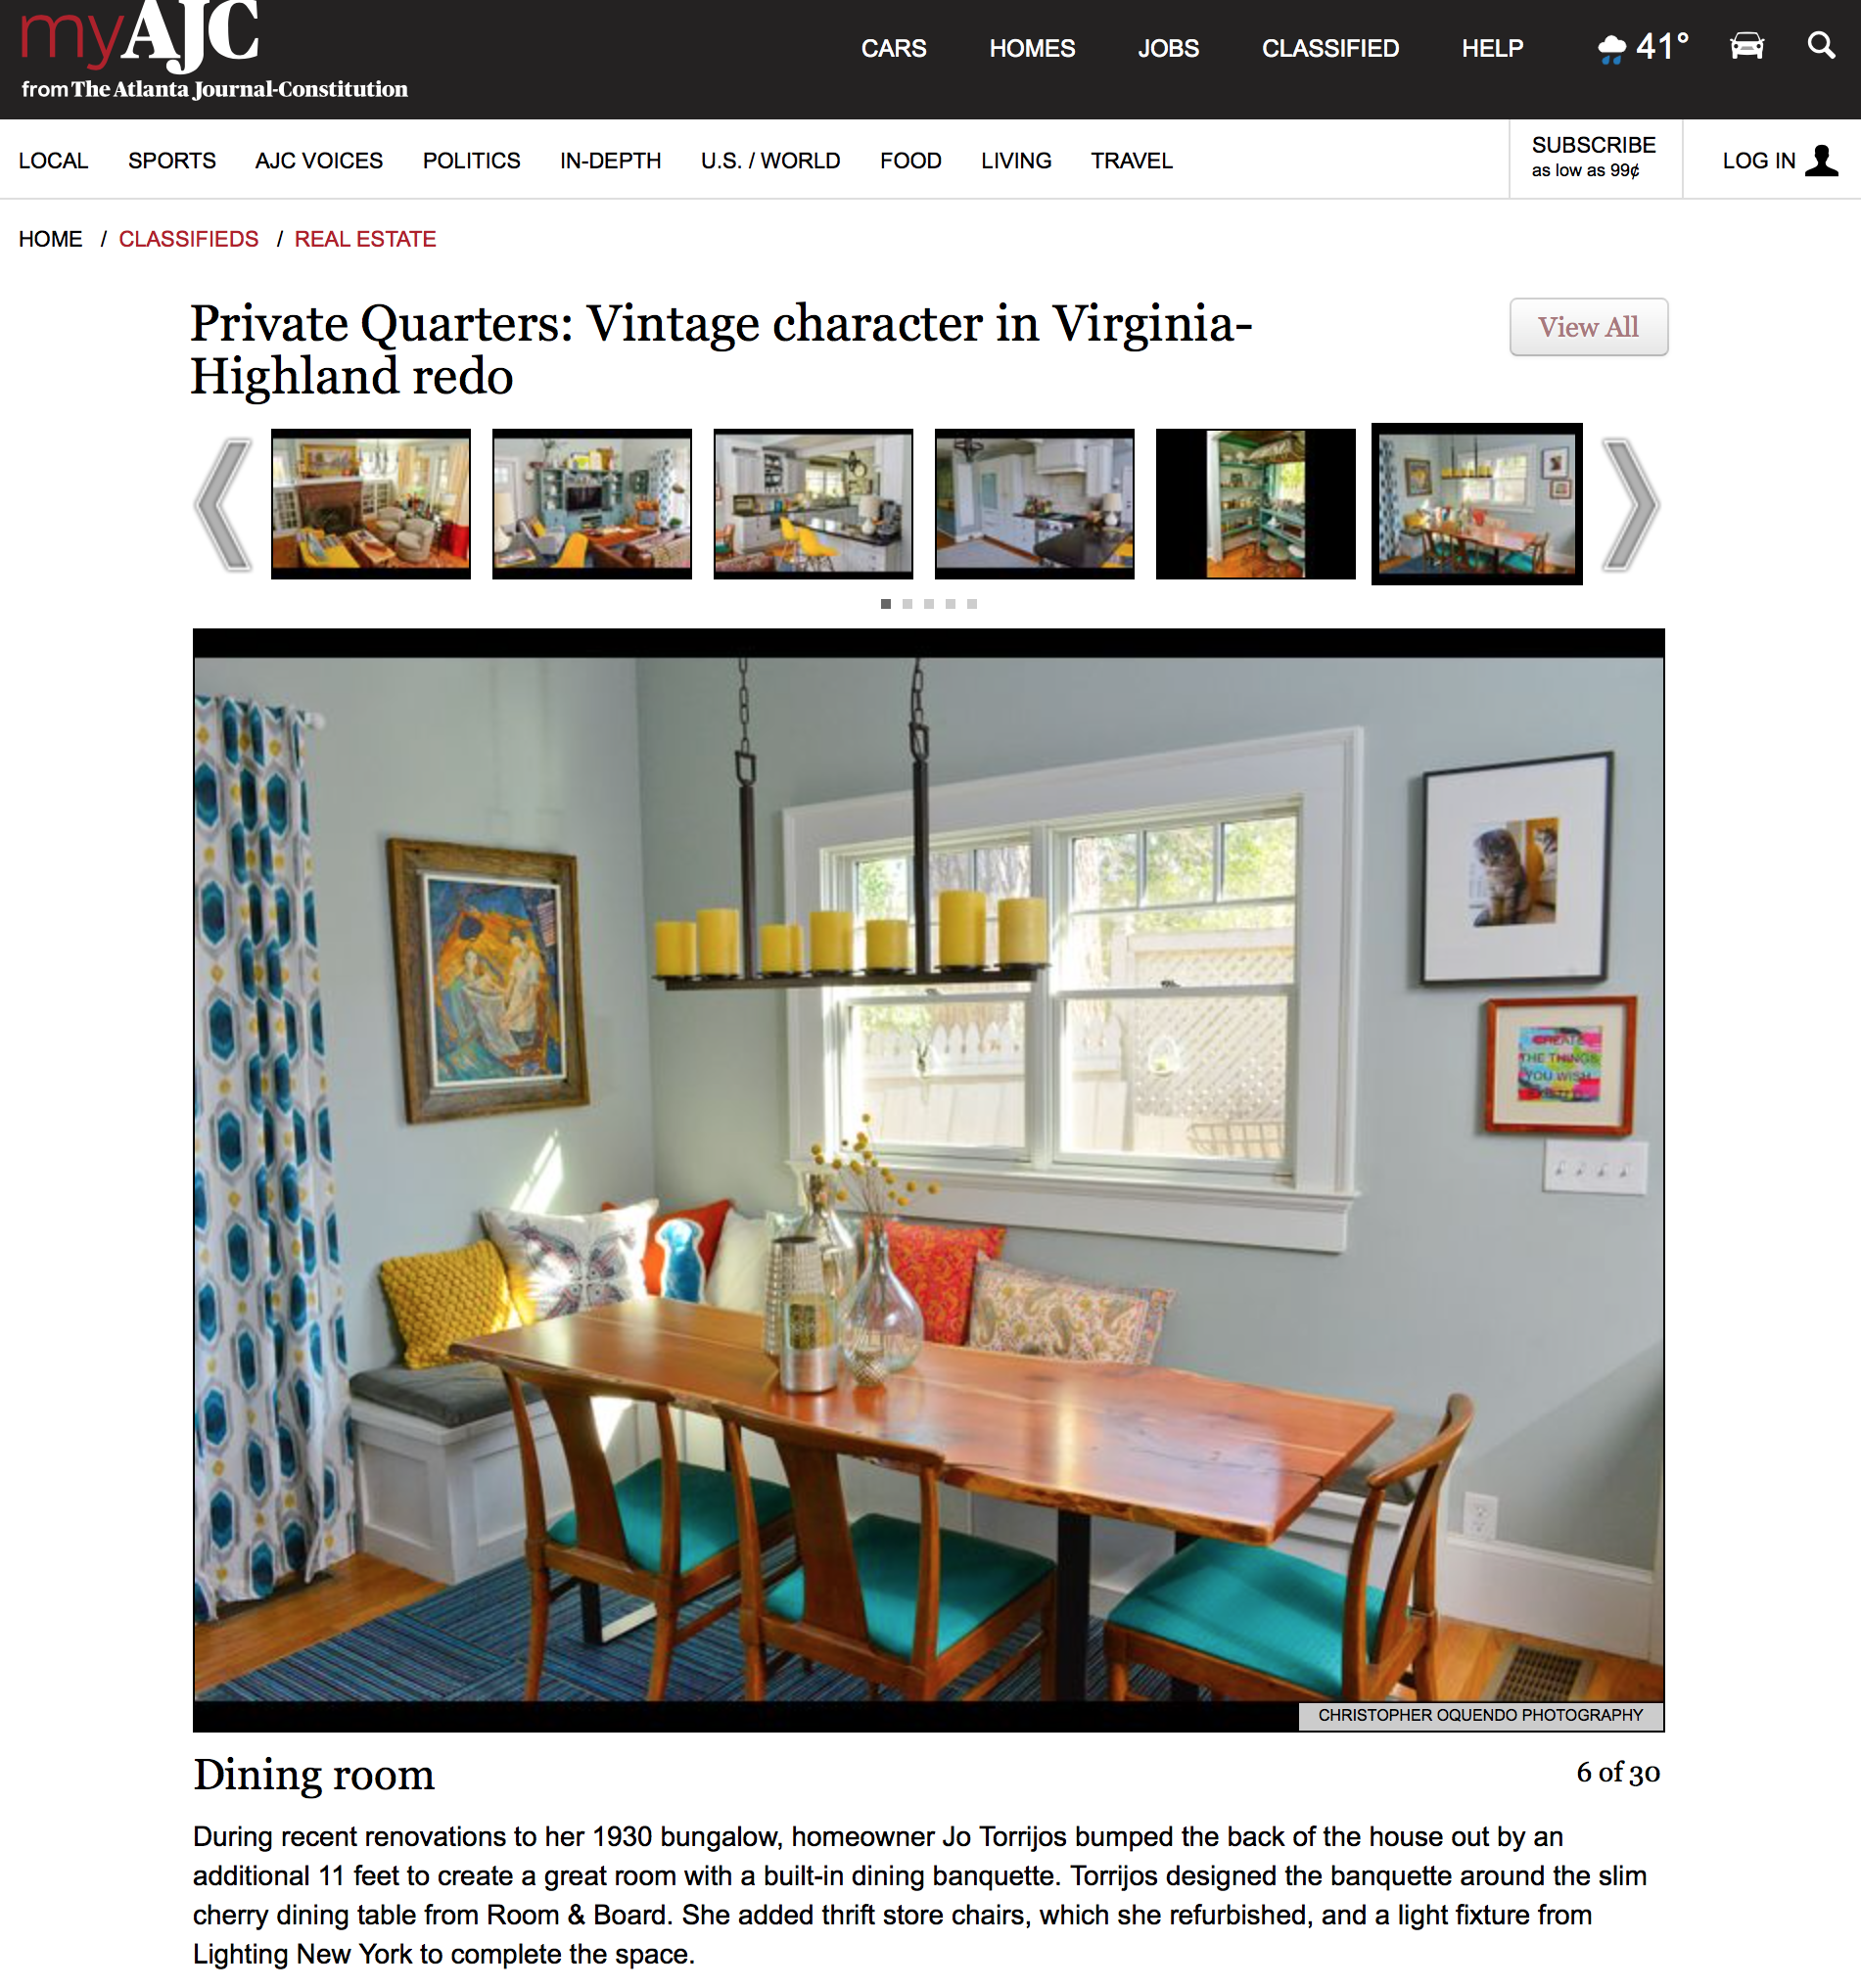 jo-torrijos-a-simpler-design-atlanta-interior-design-virginia-highland-bungalow-ajc-7.png